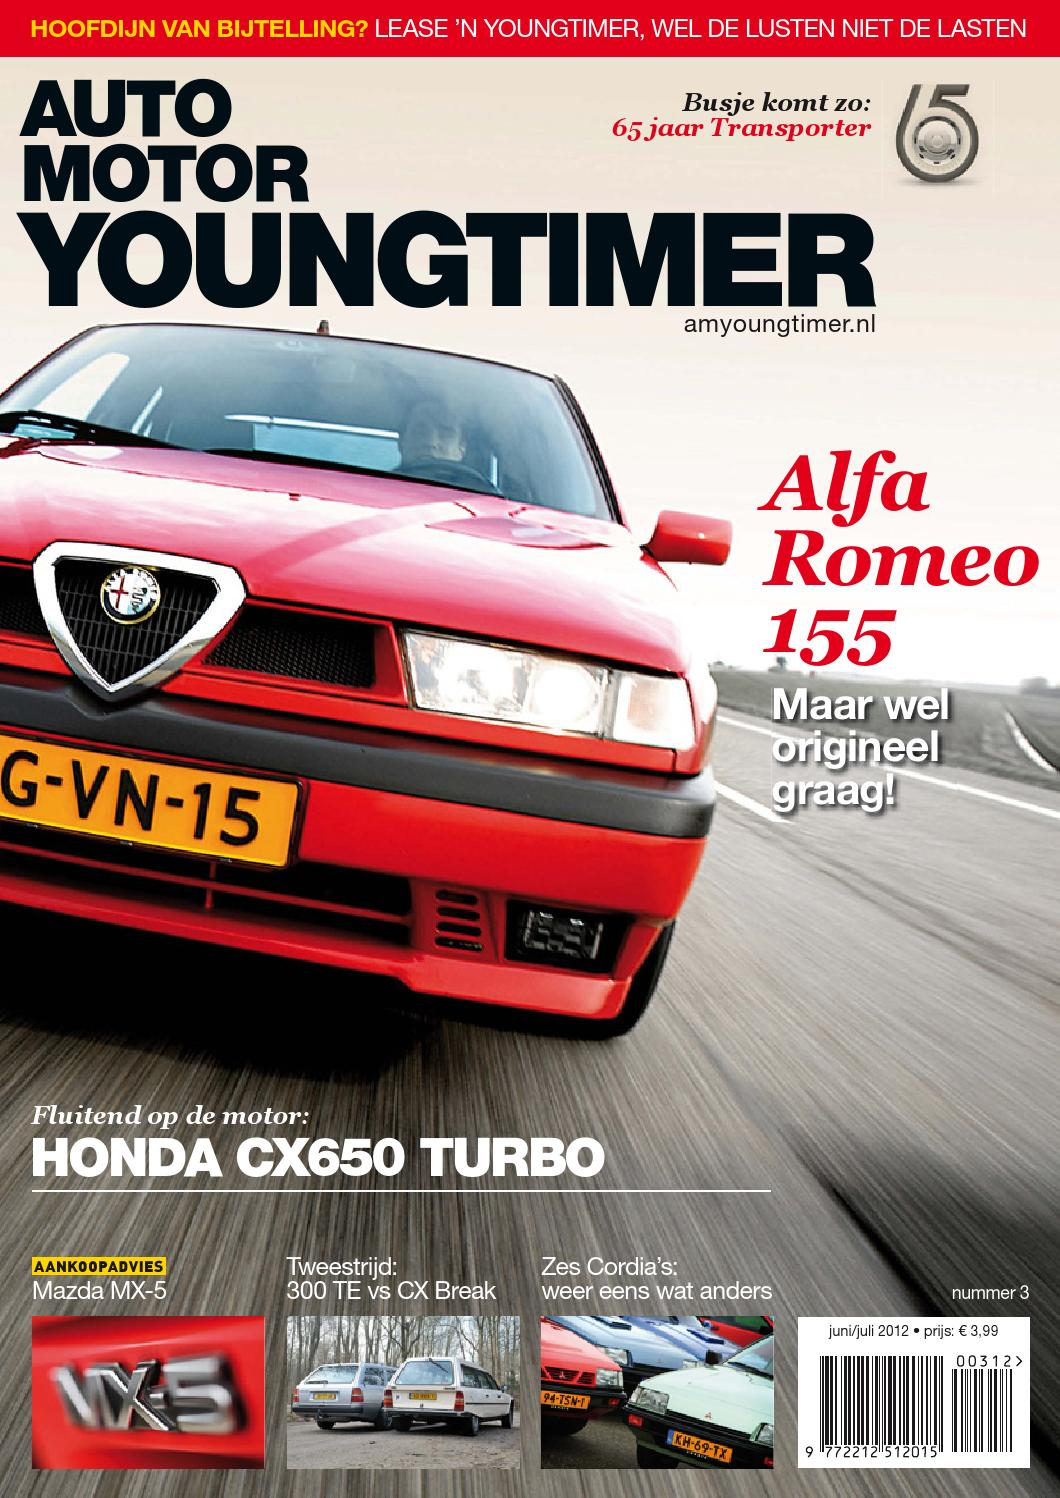 Auto Motor Youngtimer By Nhw Concept Graphic Design Issuu